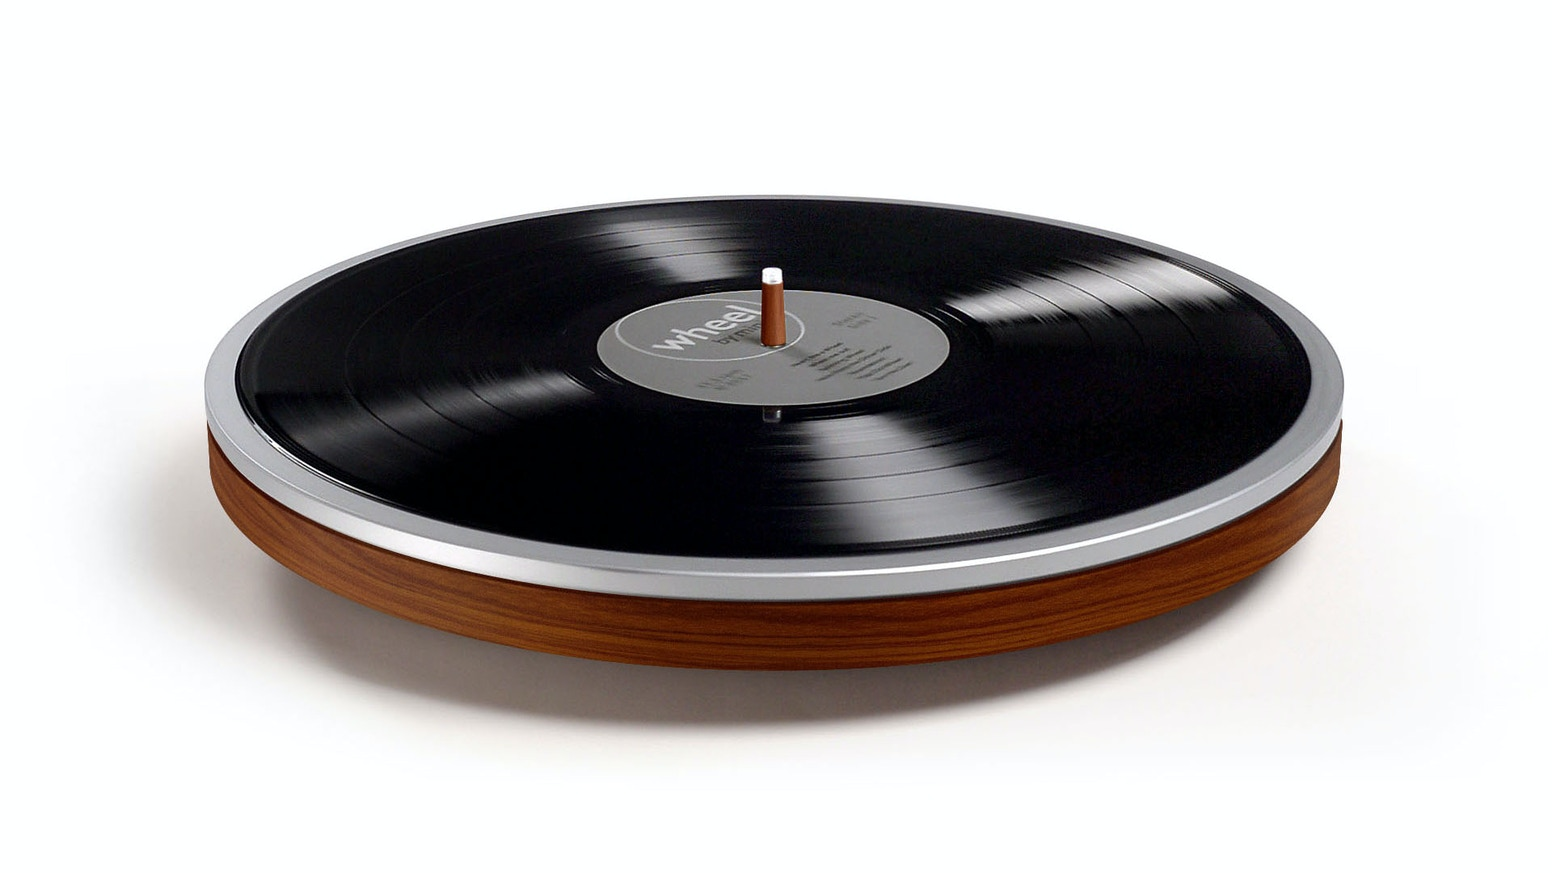 The record finally gets the turntable it deserves. Wheel is a record player that's just a wheel.